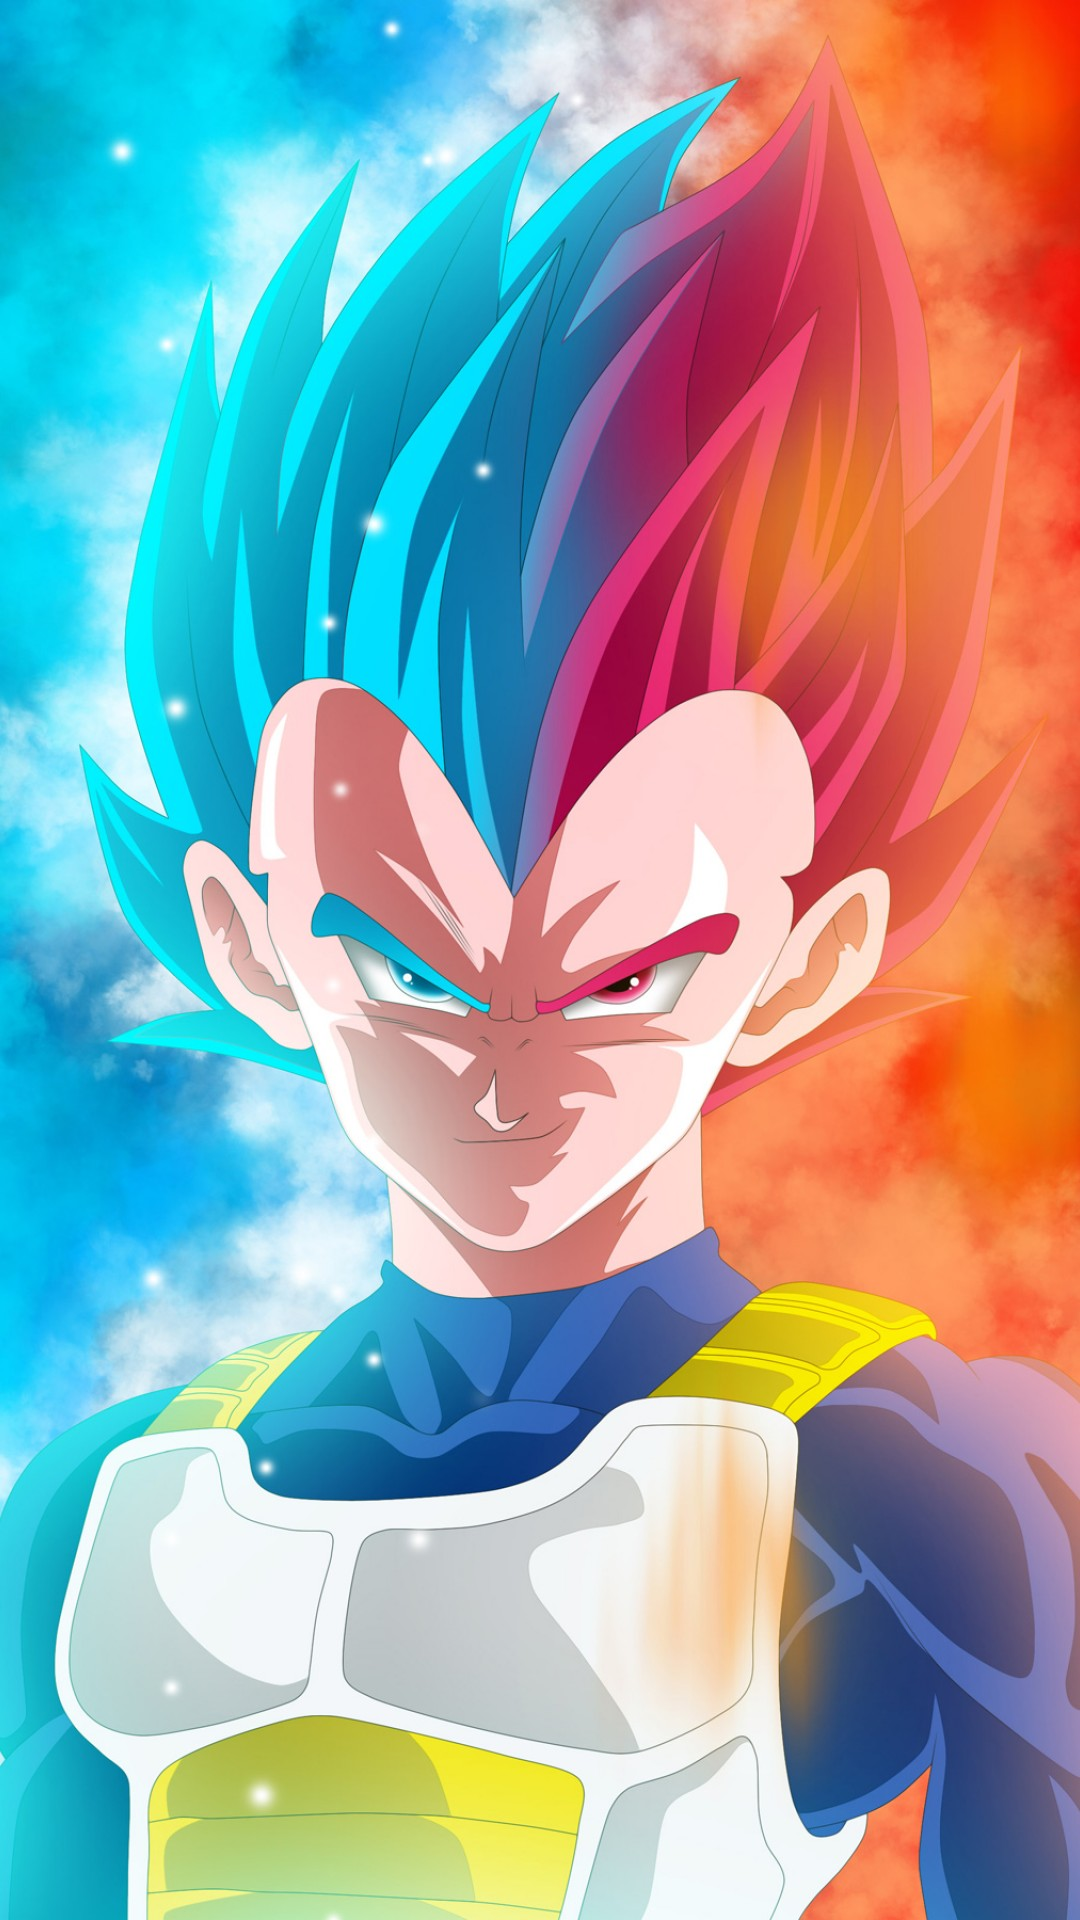 Vegeta Dragon Ball Super Z Wallpaper For Desktop And Mobiles